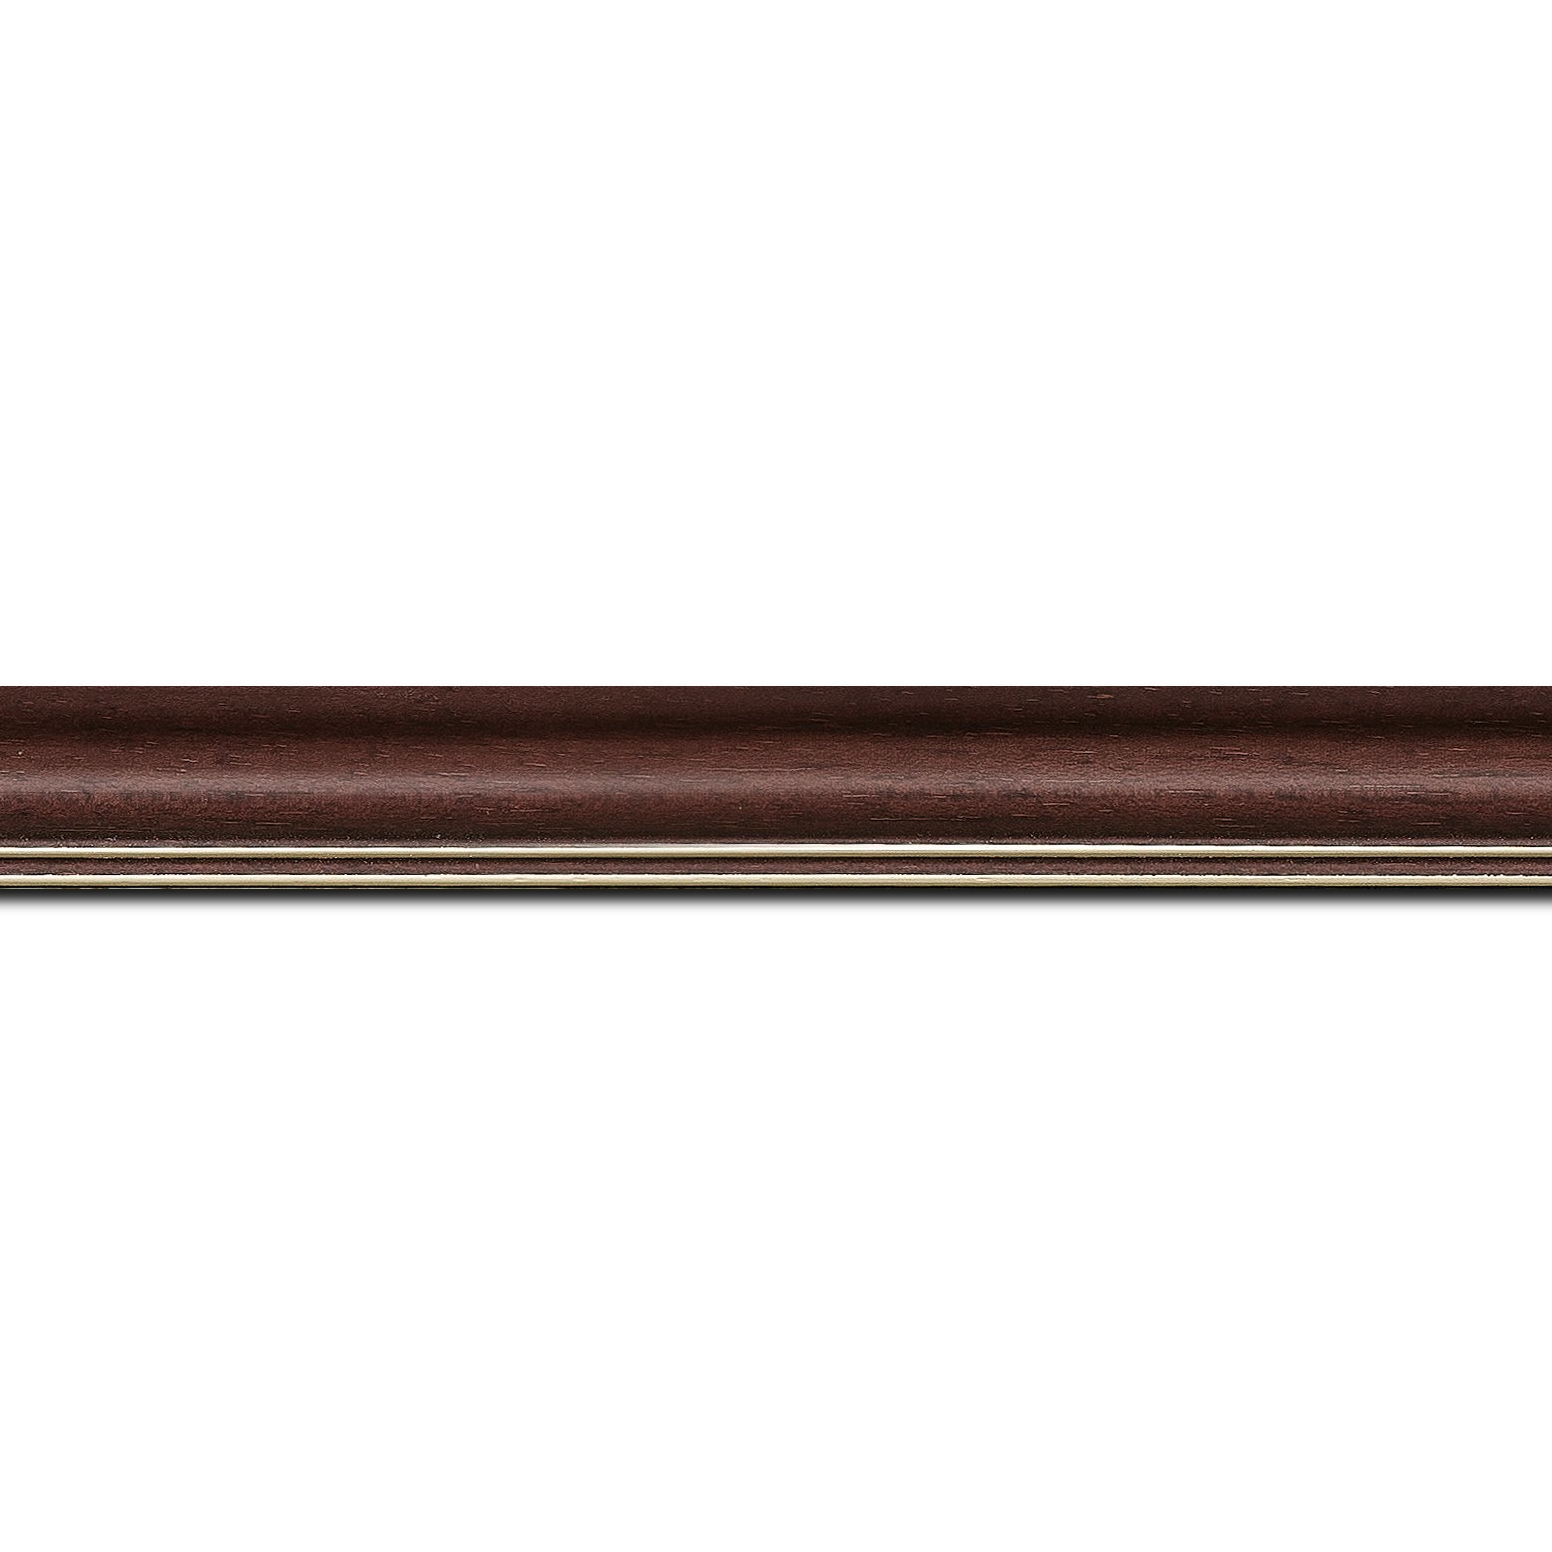 Baguette longueur 1.40m bois profil doucine inversée largeur 2.3cm bordeaux satiné double filet or